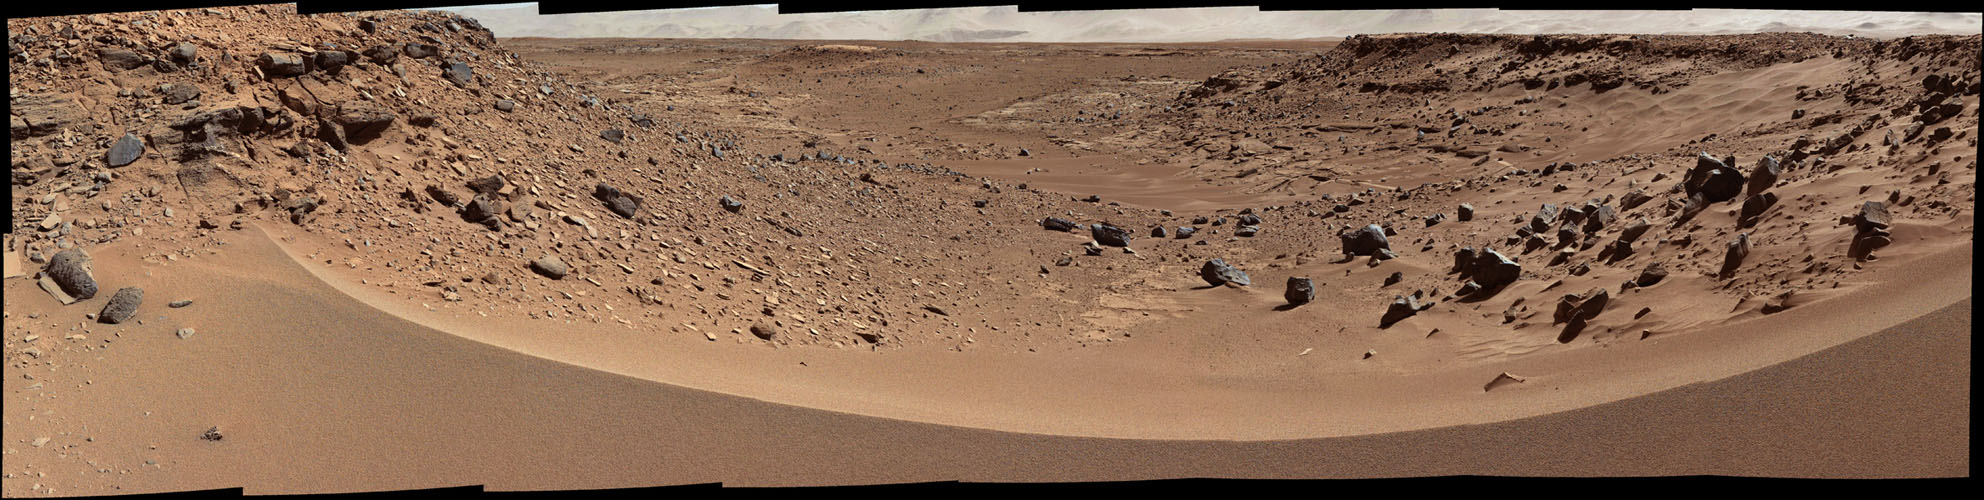 This view combines several frames taken by NASA's Mars rover Curiosity, looking into a valley to the west from the eastern side of a dune at the eastern end of the valley.